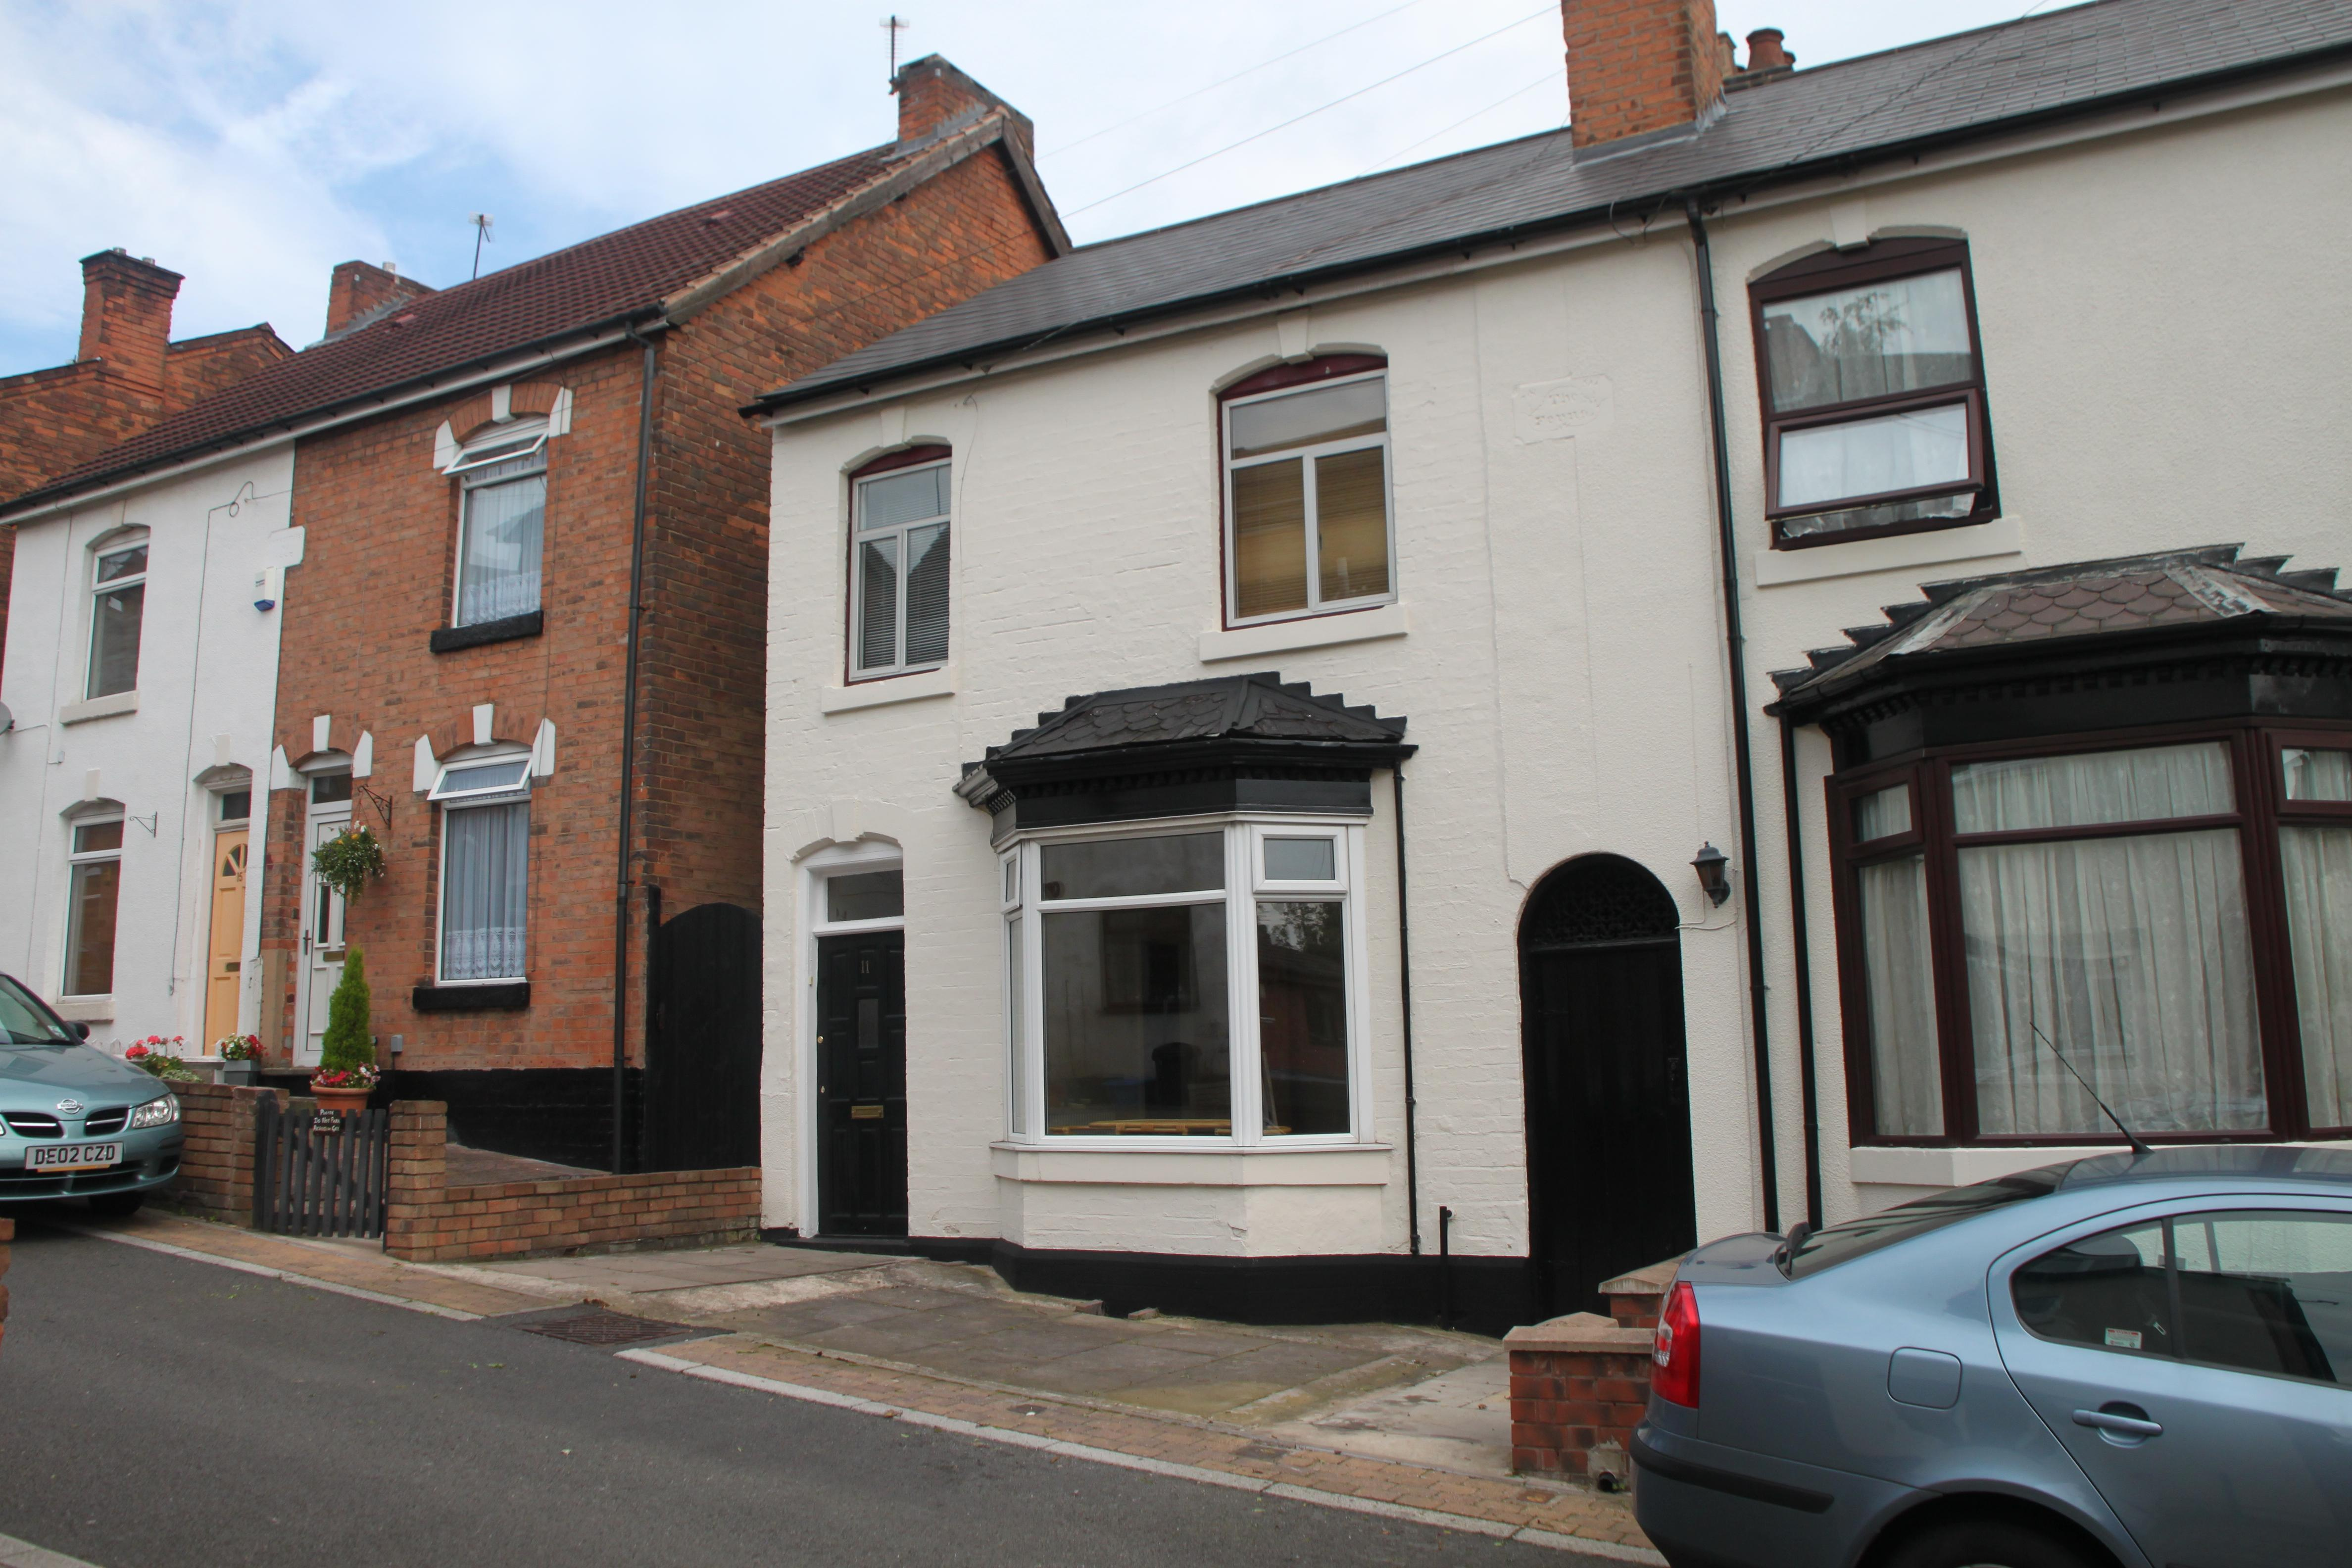 3 Bedroom Any Terraced To Rent On Spring Hill Erdington Birmingham B24